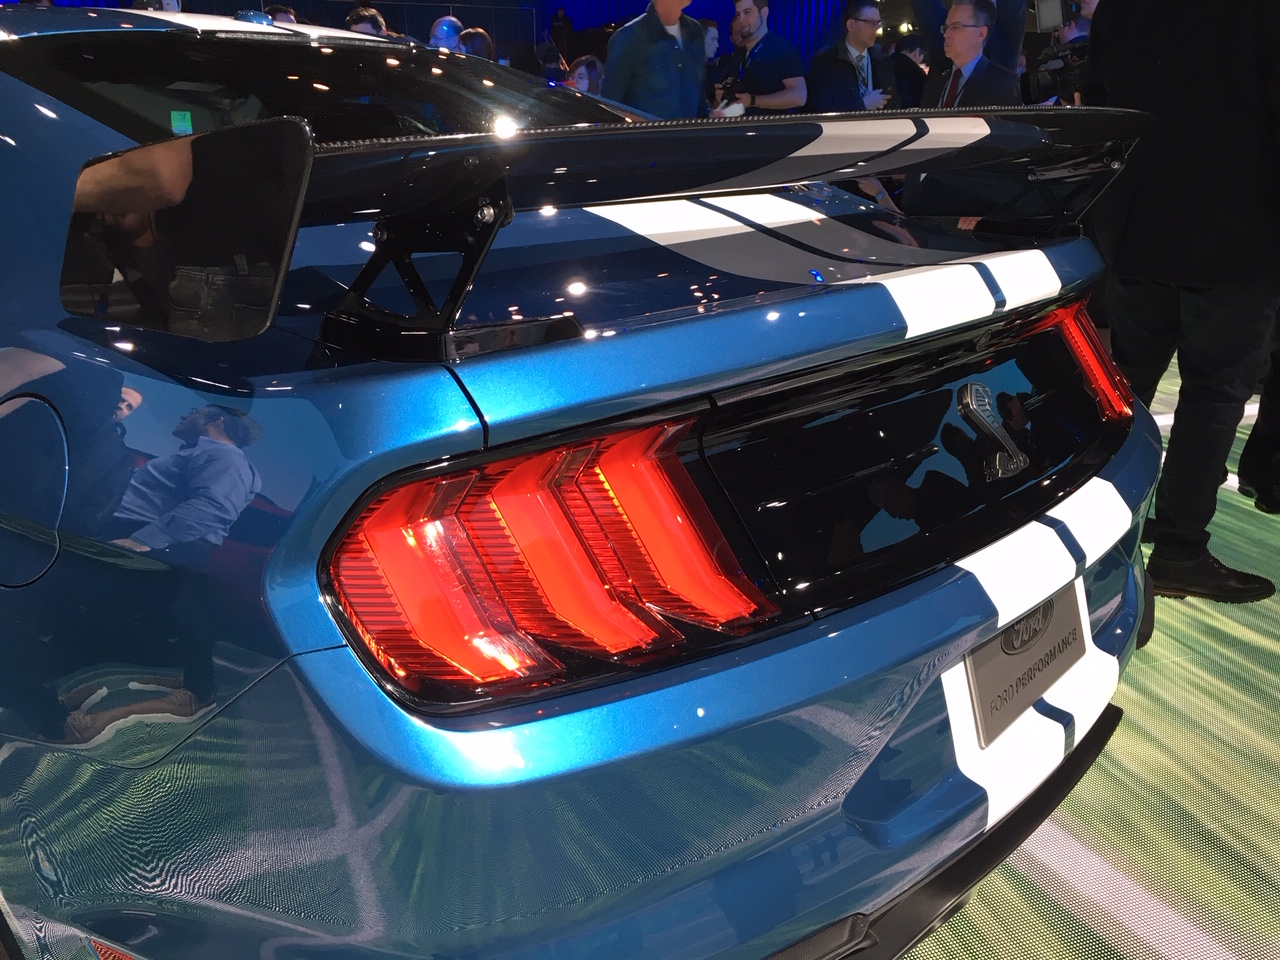 Ford Mustang Shelby GT 500 ¡Street legal!